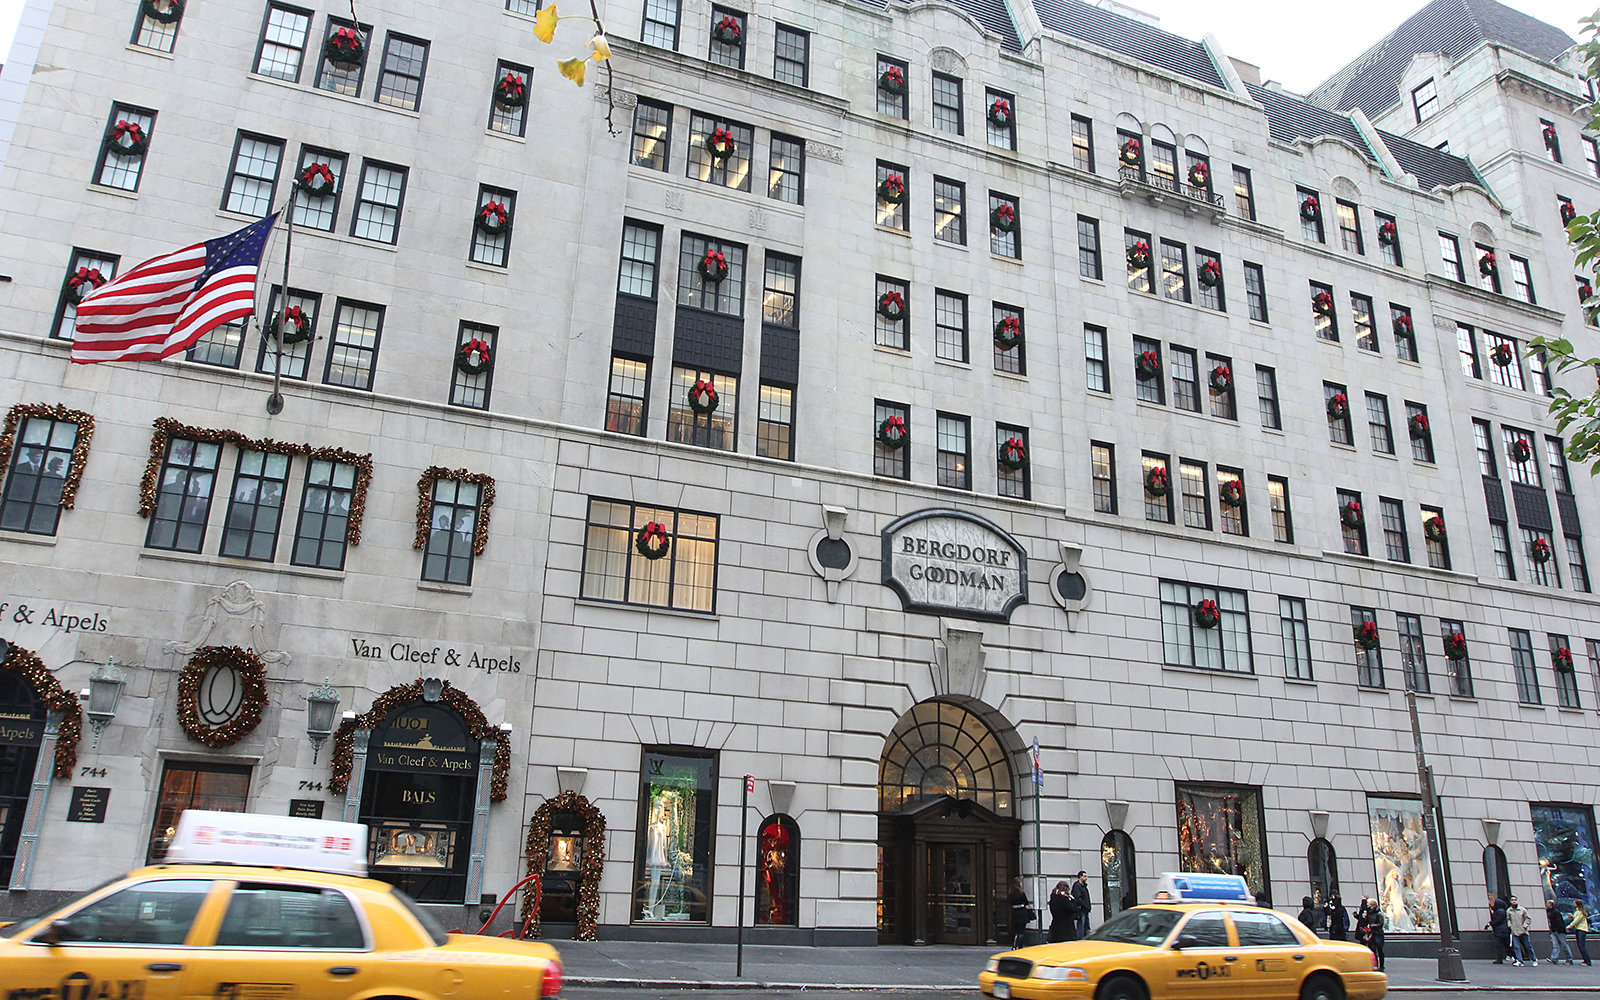 Bergdorf Goodman: New York City